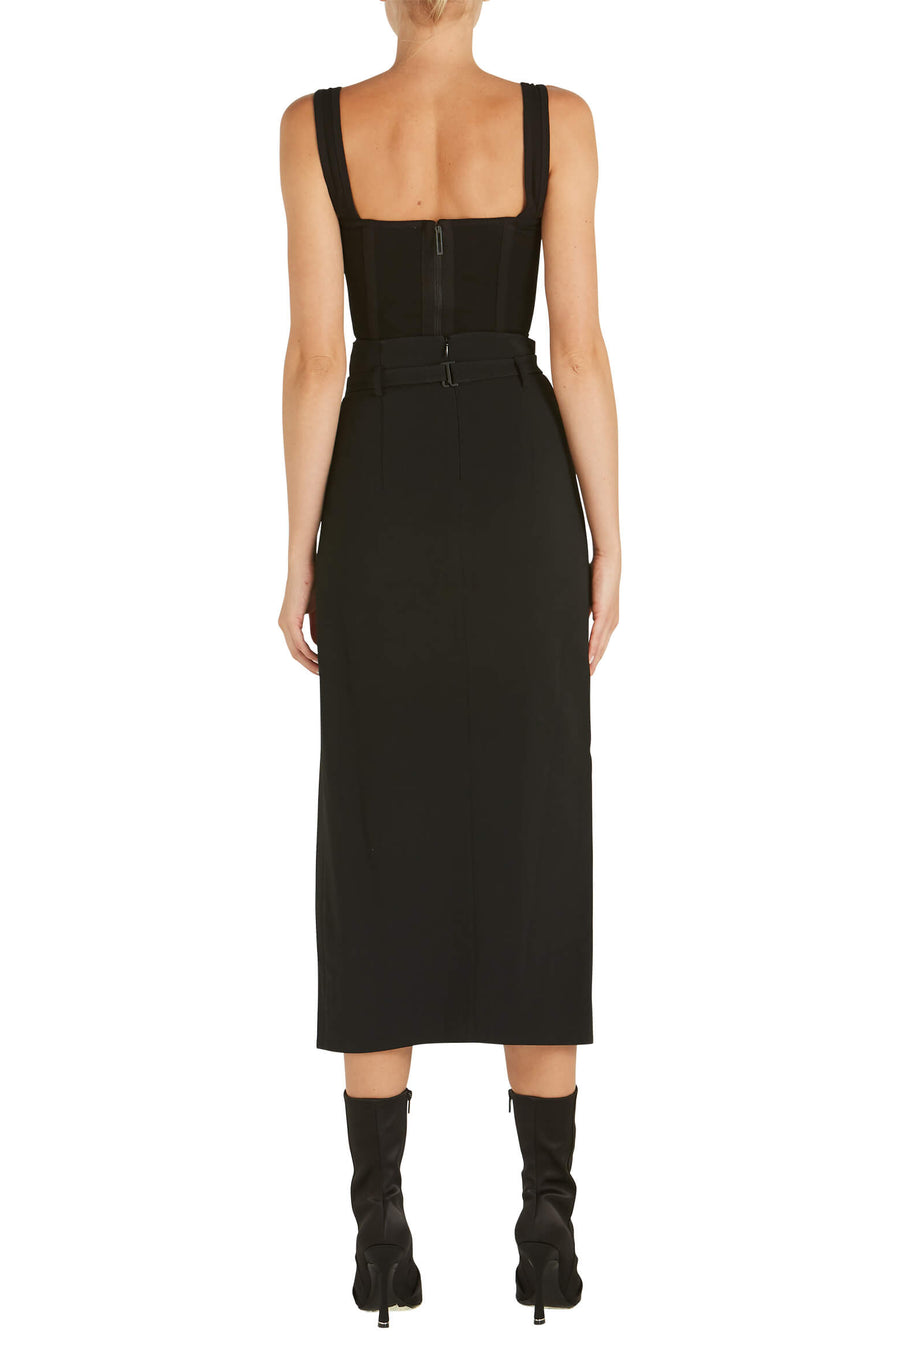 Dion Lee Rib Jersey Corset Black from The New Trend